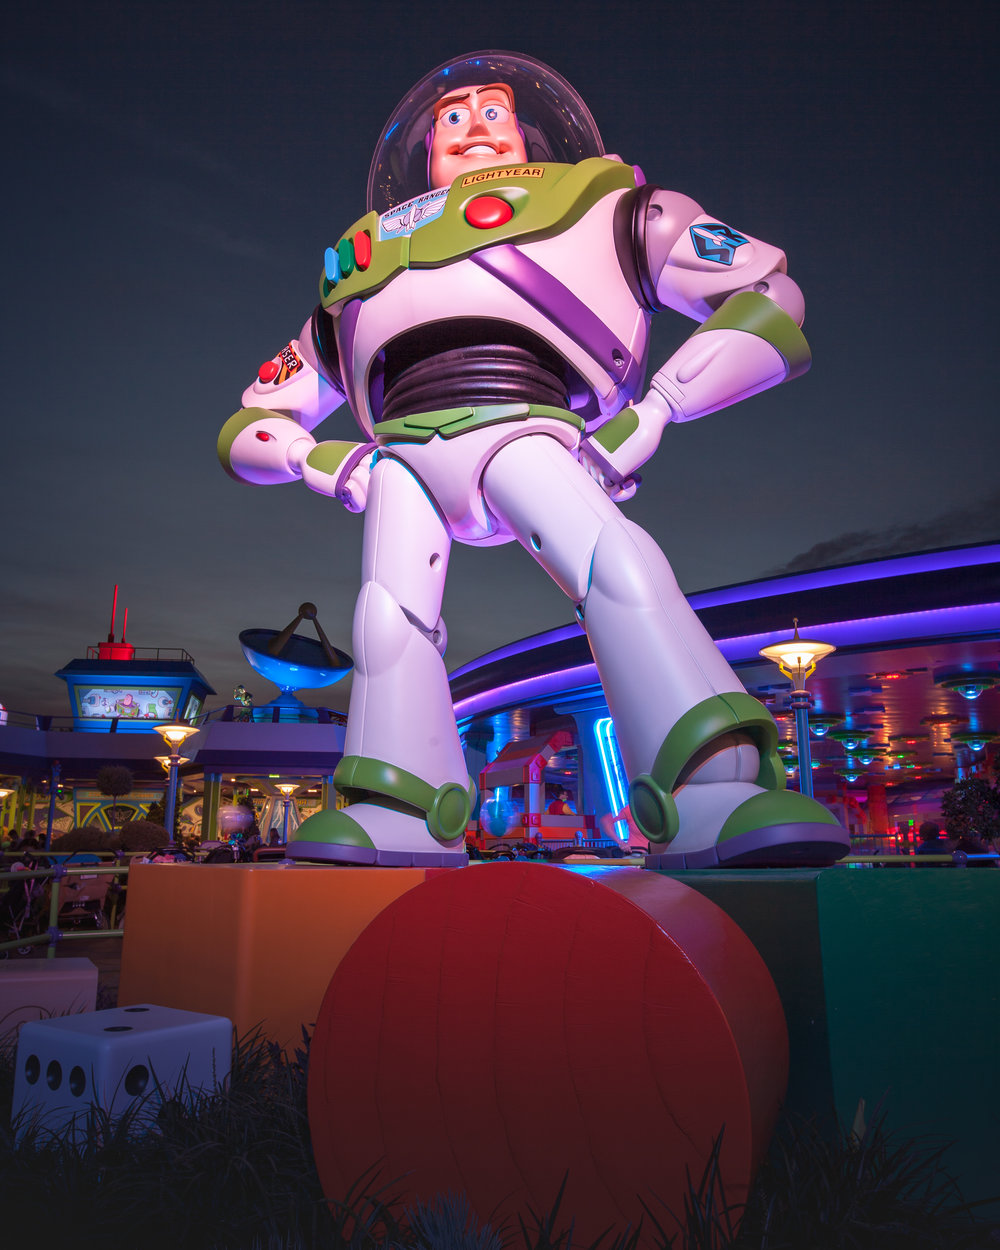 Buzz Lightyear at Toy Story Land; Gilmar Smith - 2018